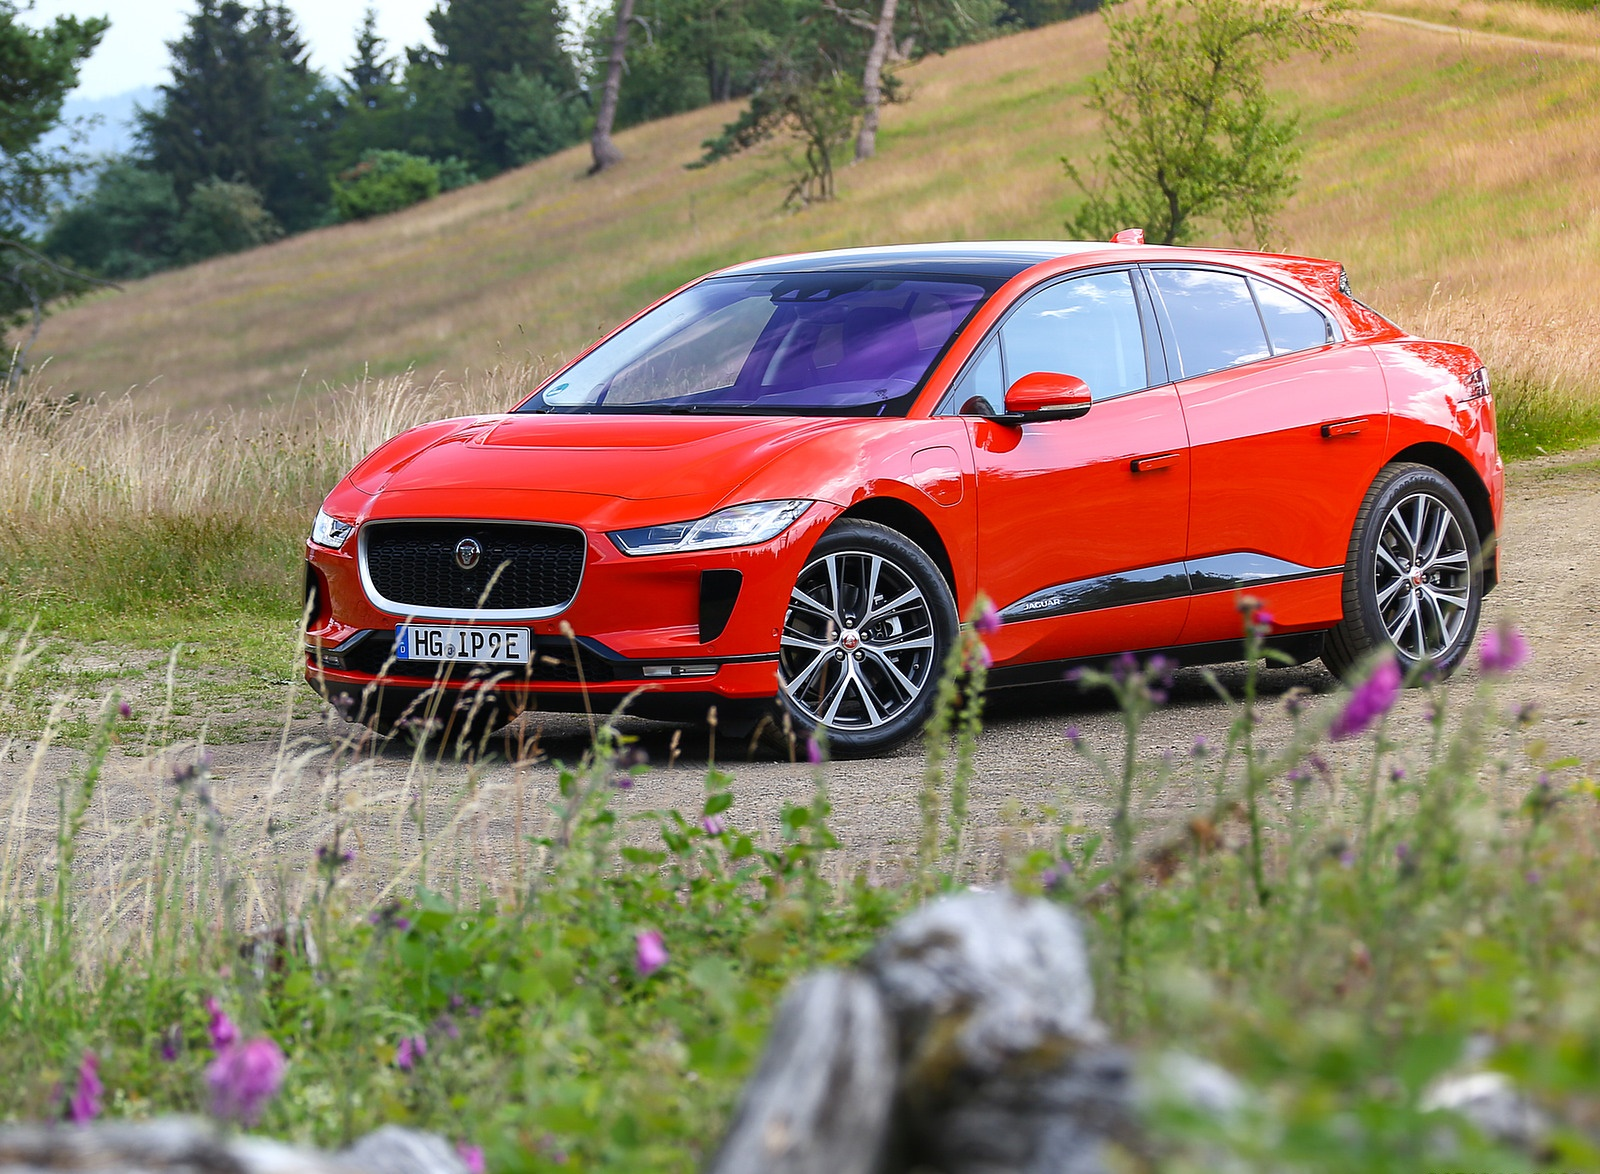 2019 Jaguar I-PACE EV400 AWD HSE First Edition (Color: Photon Red) Front Three-Quarter Wallpapers #47 of 192